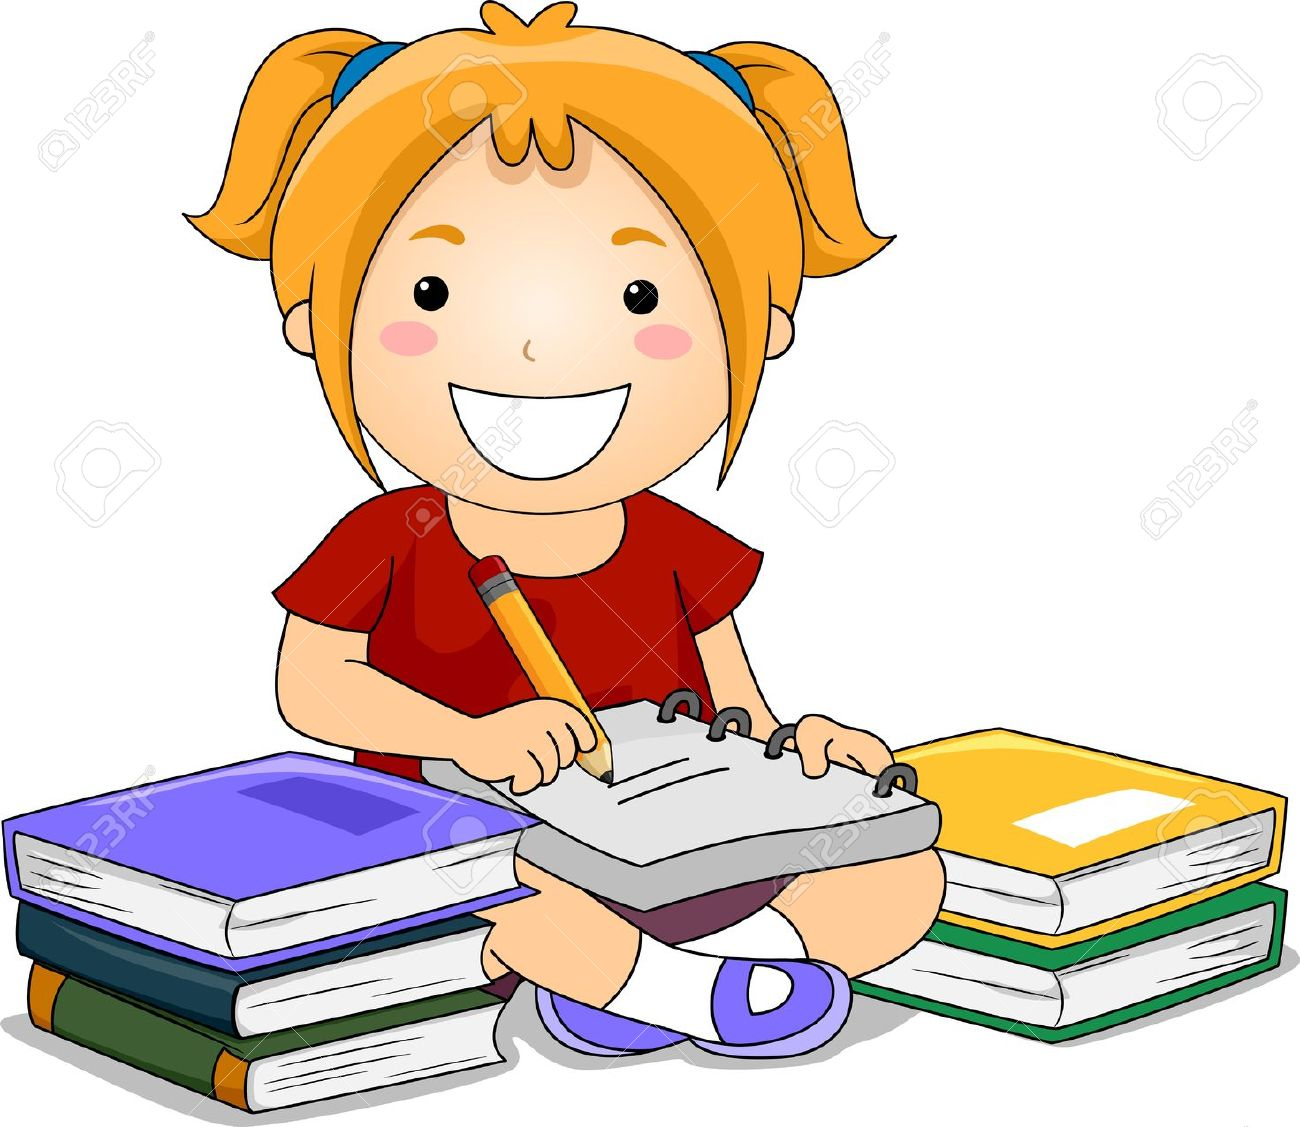 1300x1127 Illustration Of Kid Girl Writing Notes With Books On Her Side